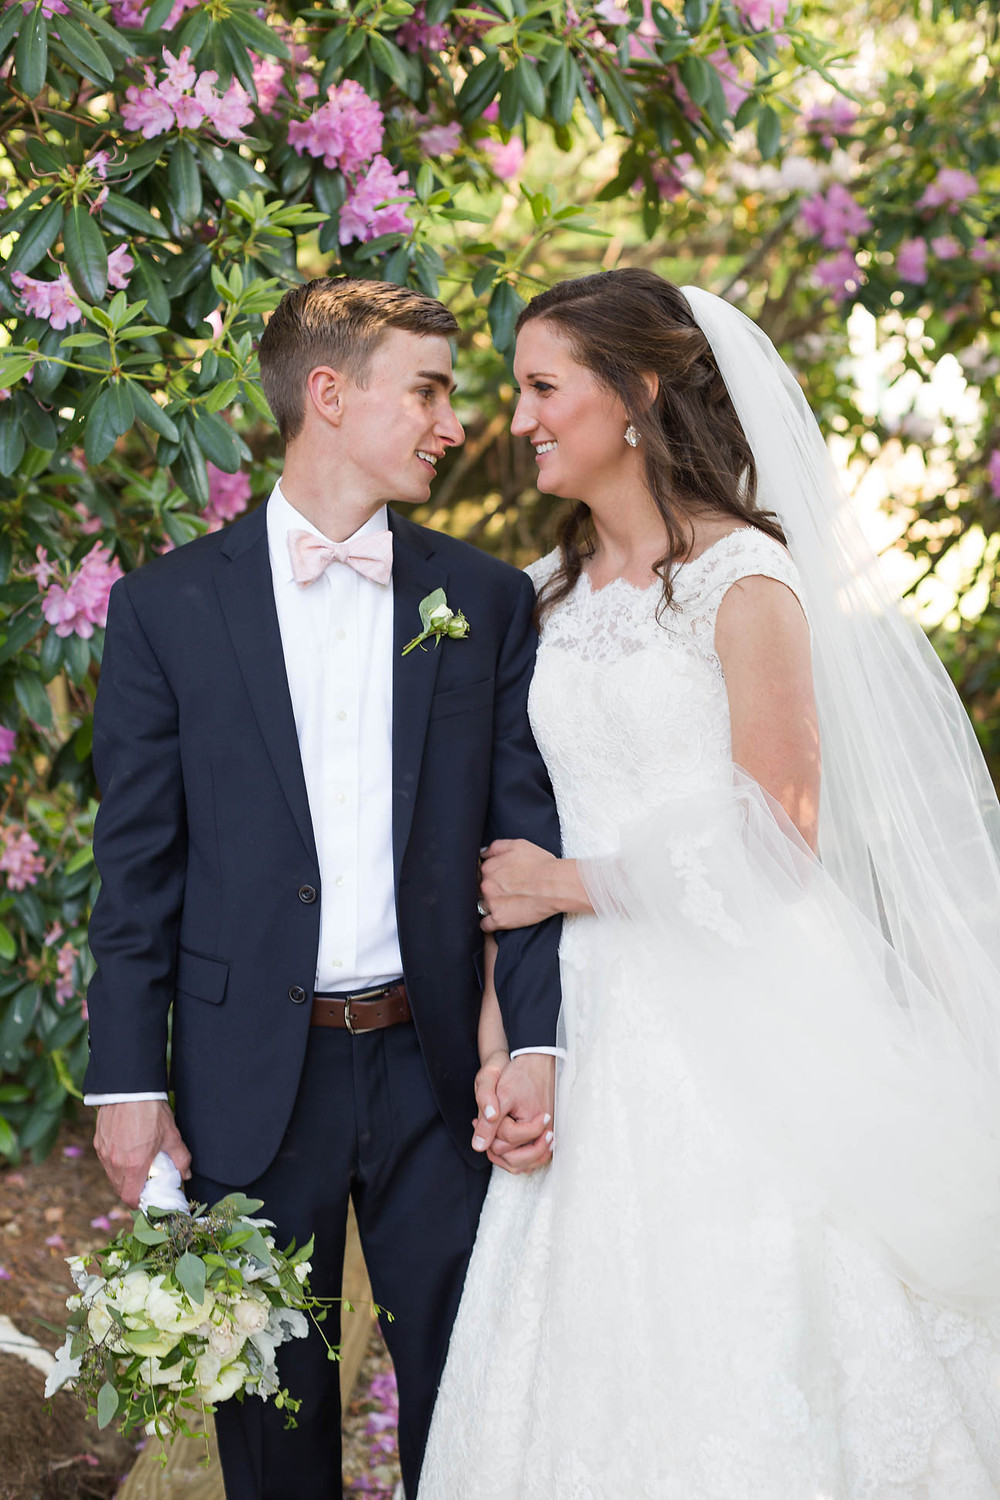 newlyweds look at each other after their outdoor mountain ceremony